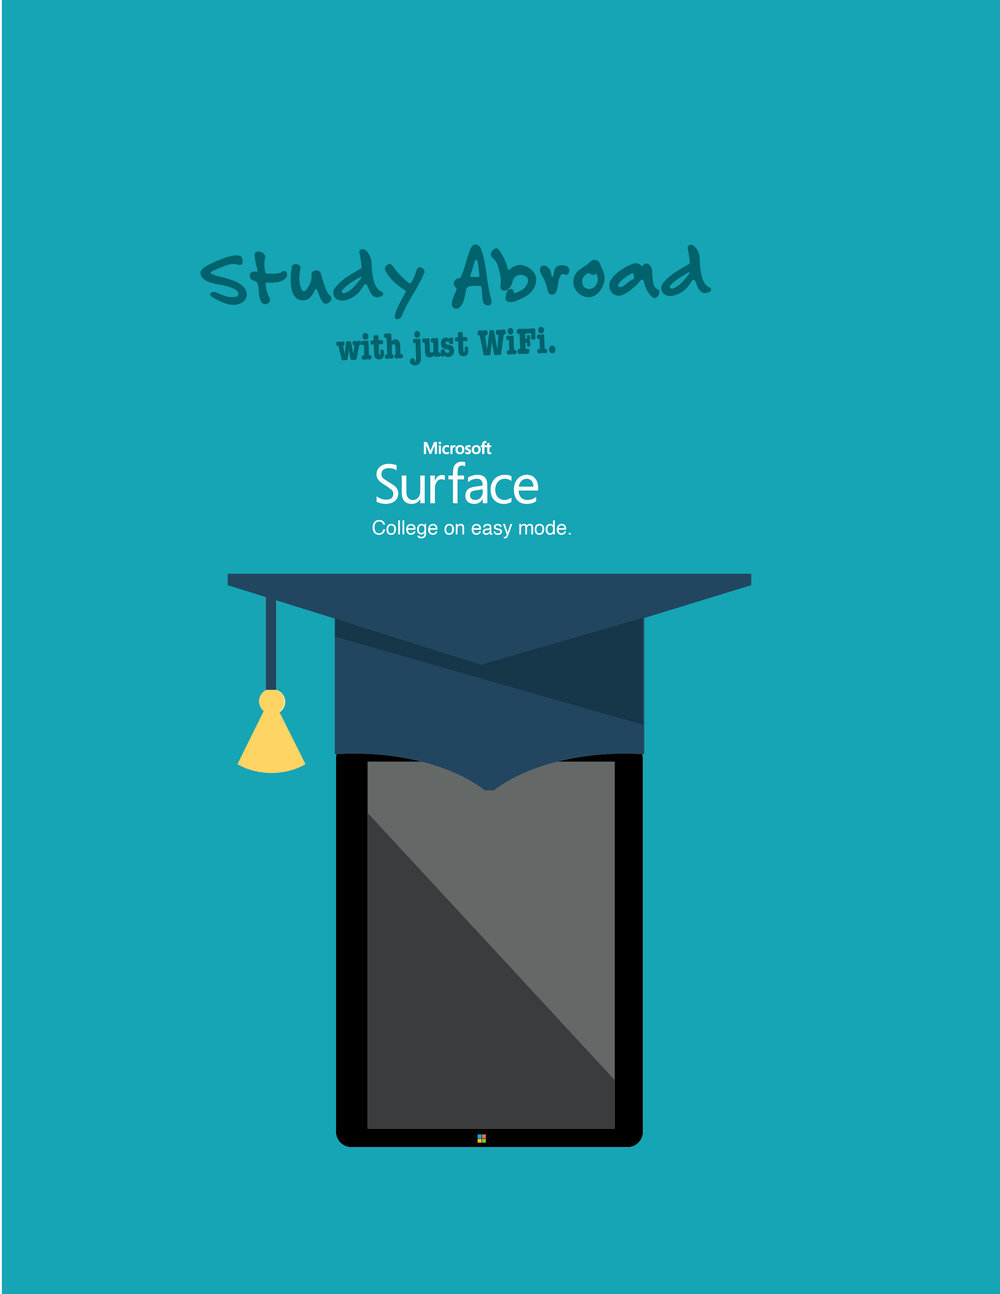 Surface Pro 3 Ads copy-06.jpg